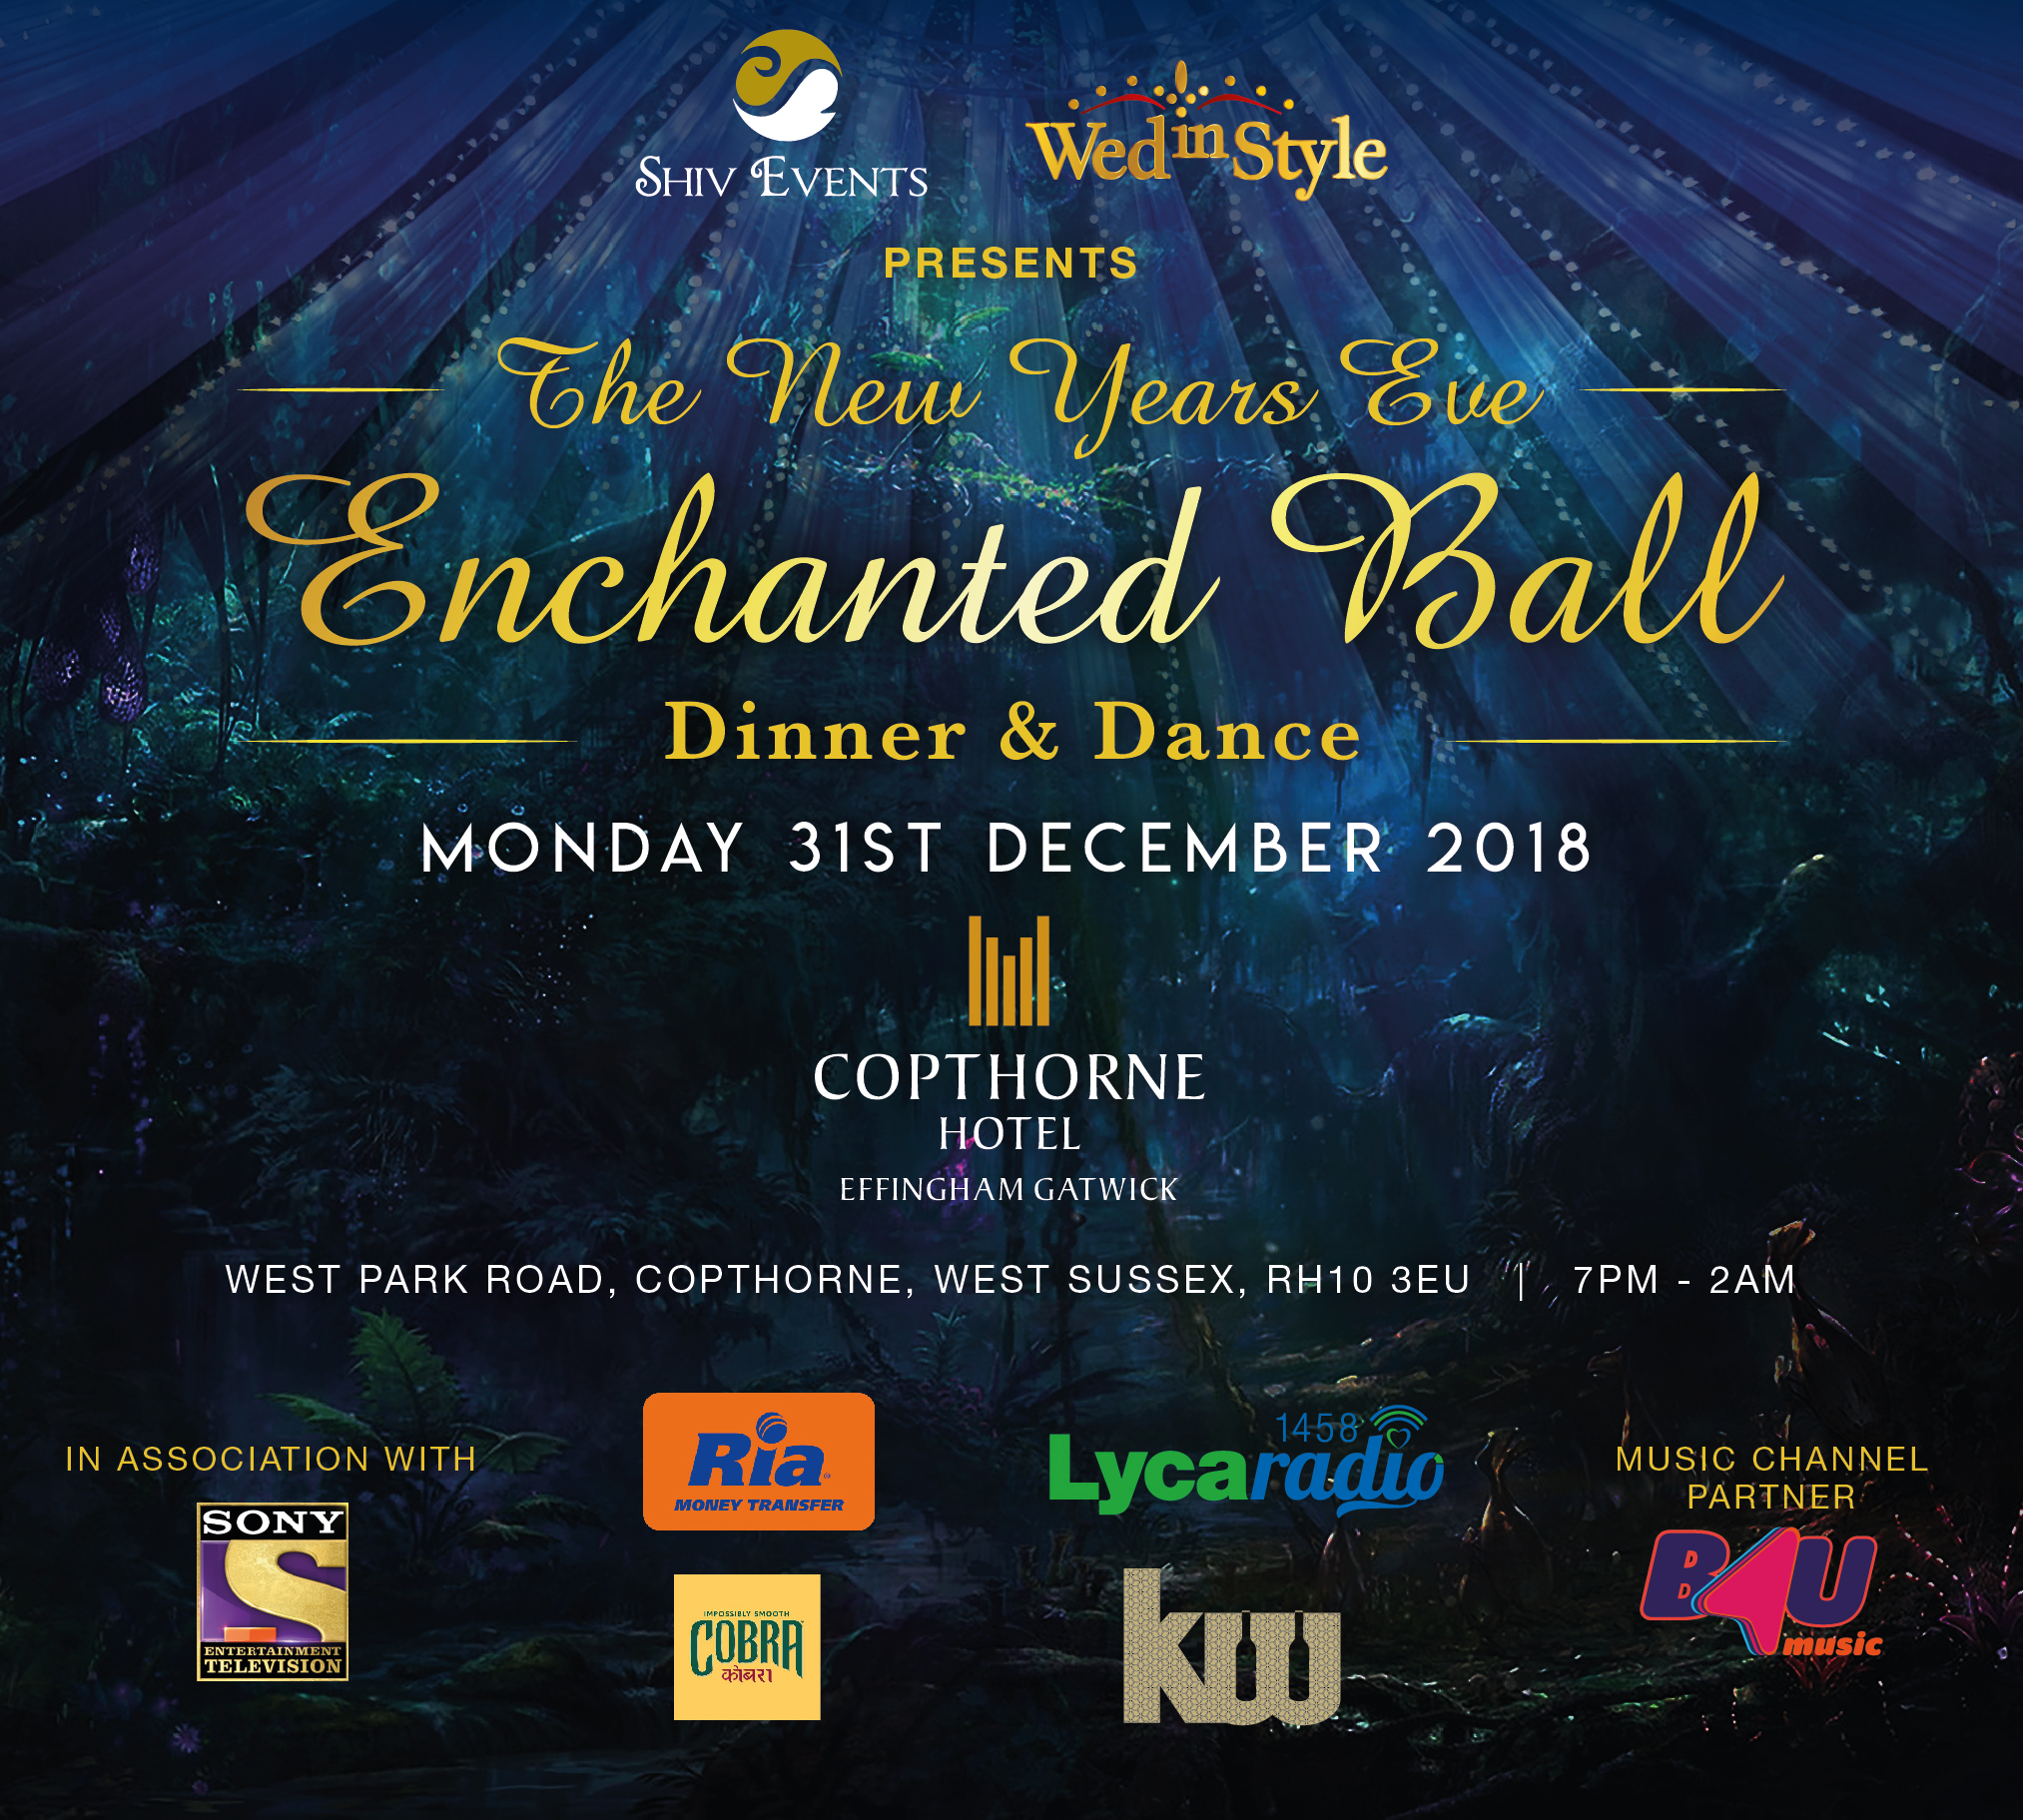 New Years Eve – Enchanted Ball 2018 – Dinner and Dance – Copthorne Effingham Gatwick Hotel